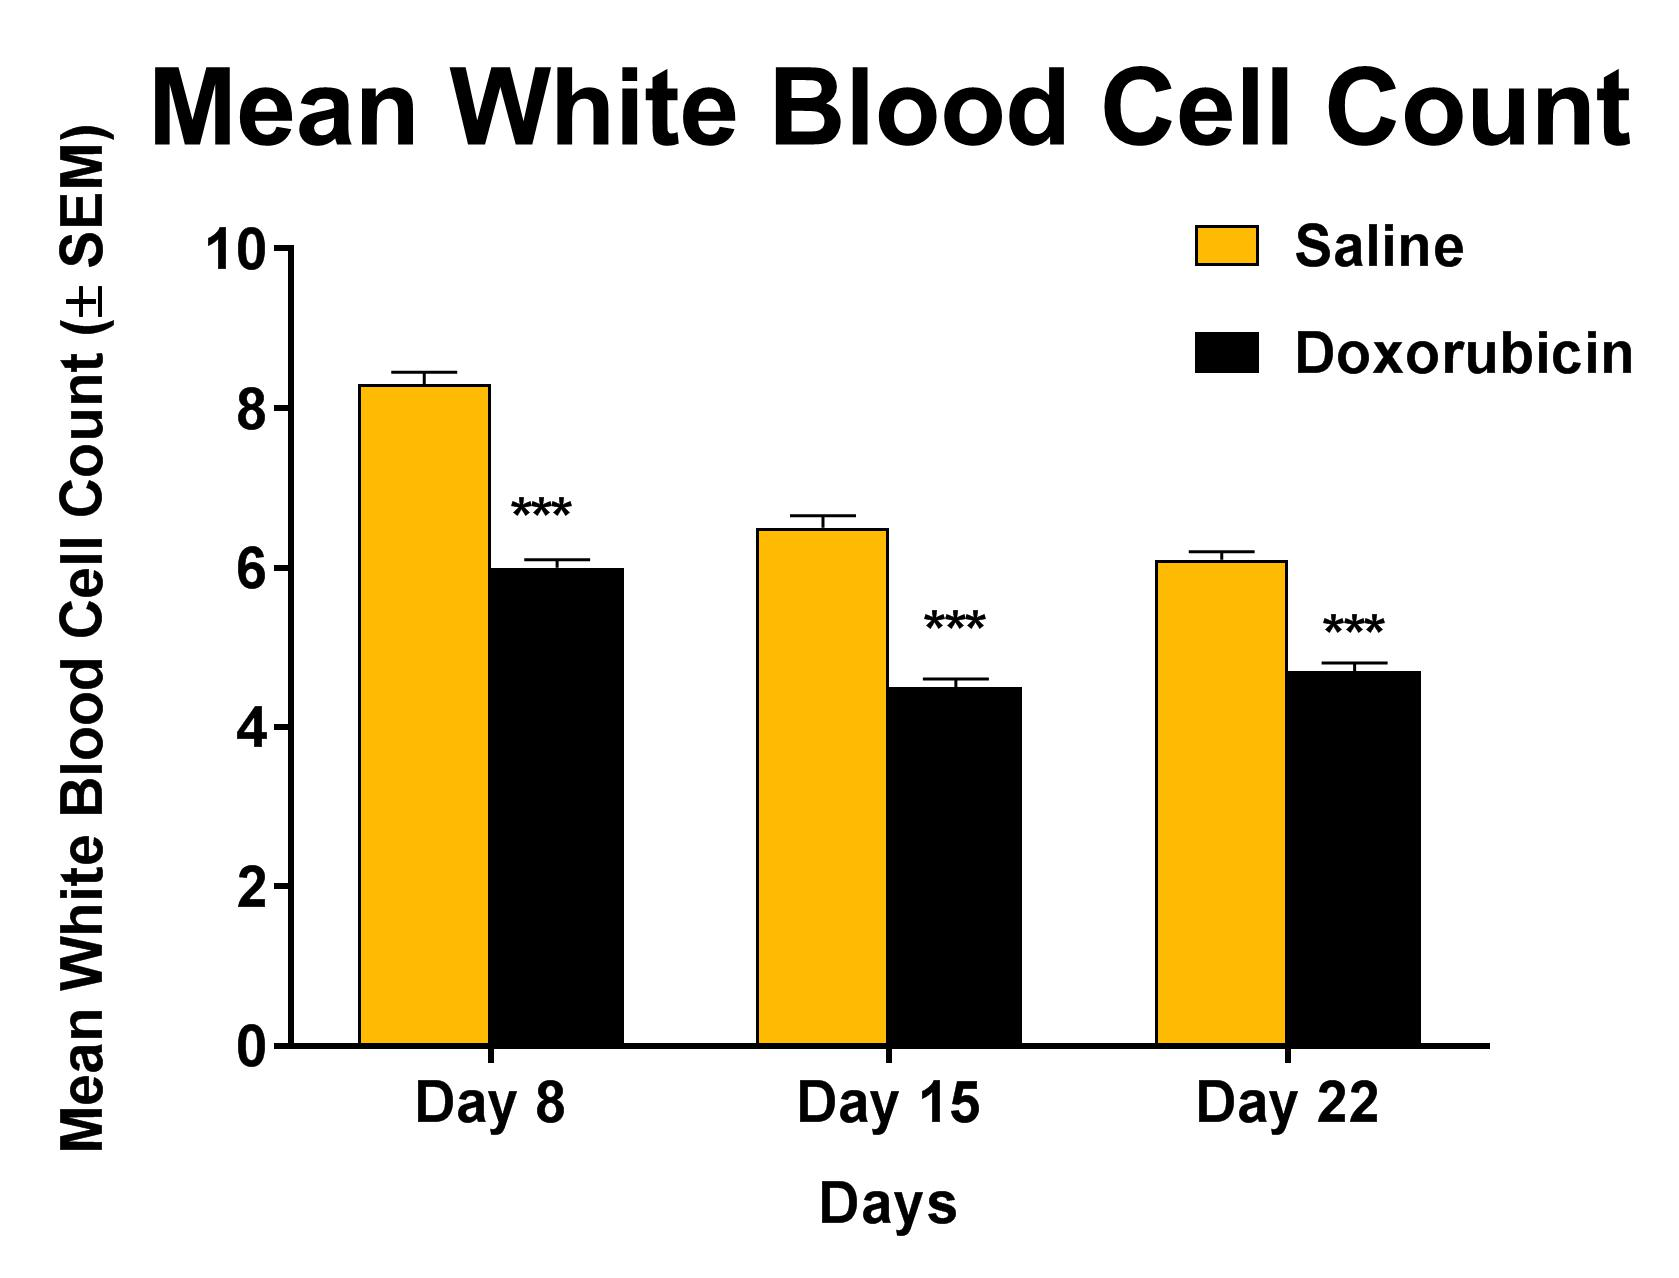 White blood cell count as a result of one cycle of doxorubicin treatment (days 1-3)